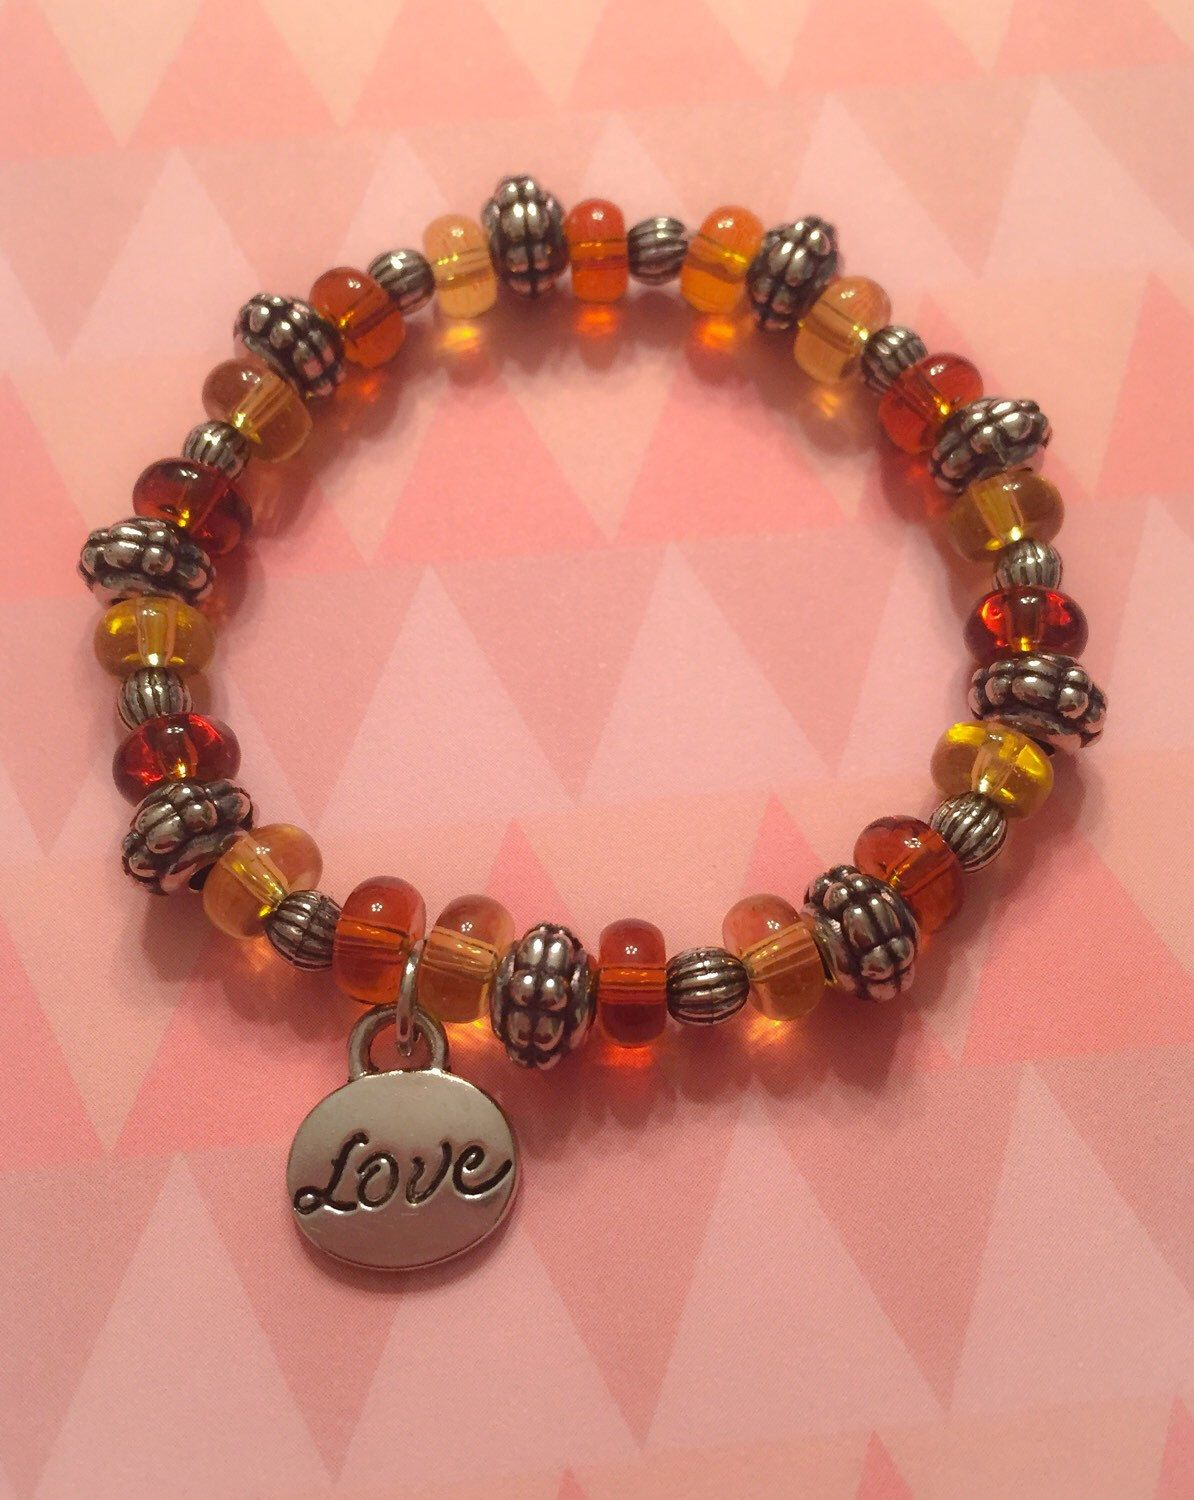 Pin by lois holtz on for love pinterest etsy bracelets and beads